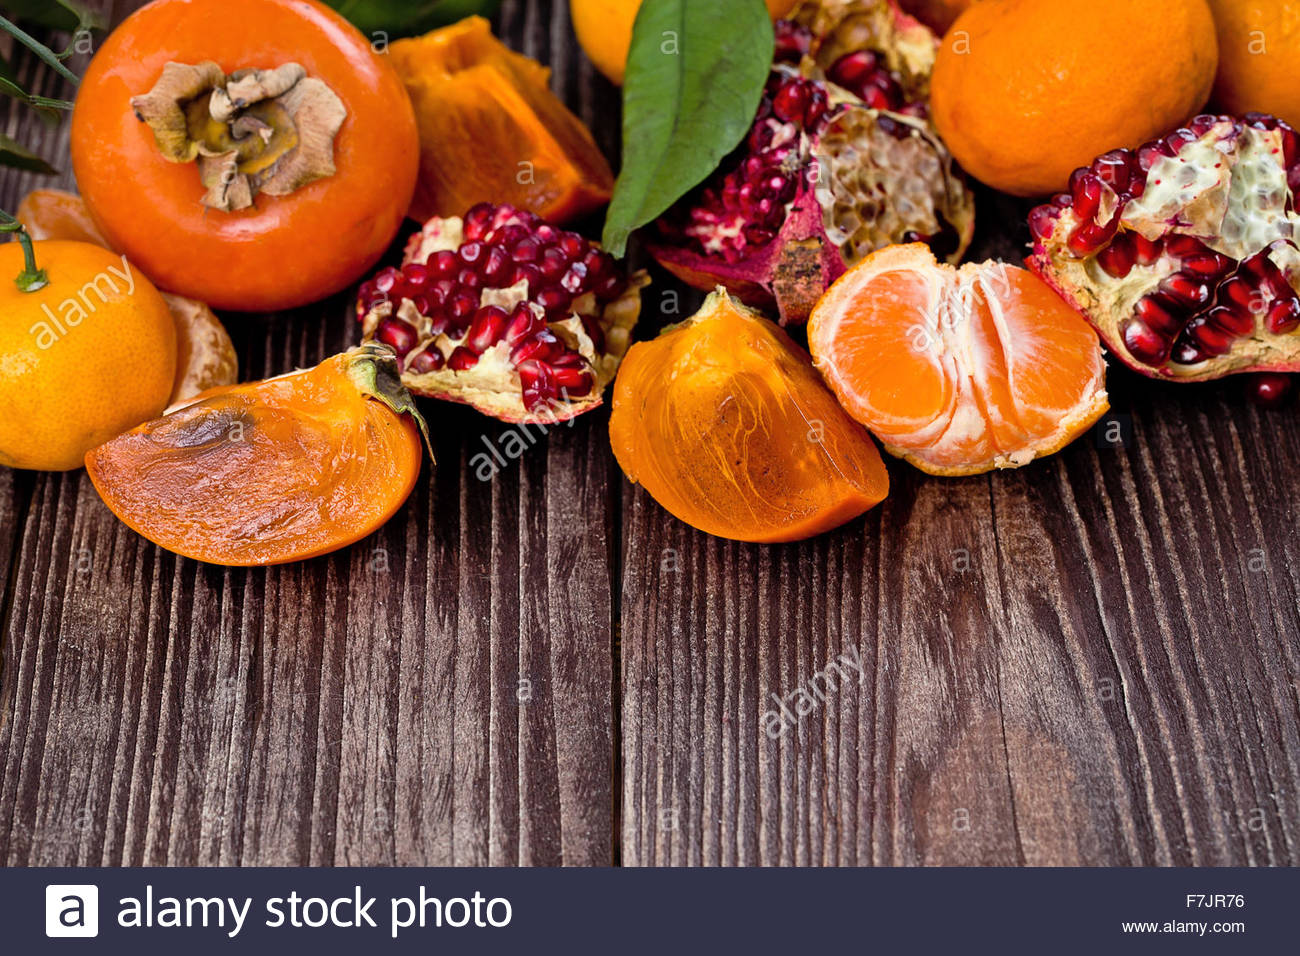 Fresh fruits on a wooden background. Raw and vegetarian eating frame. Sliced orange, persimmon, tangerine, pomegranate. - Stock Image